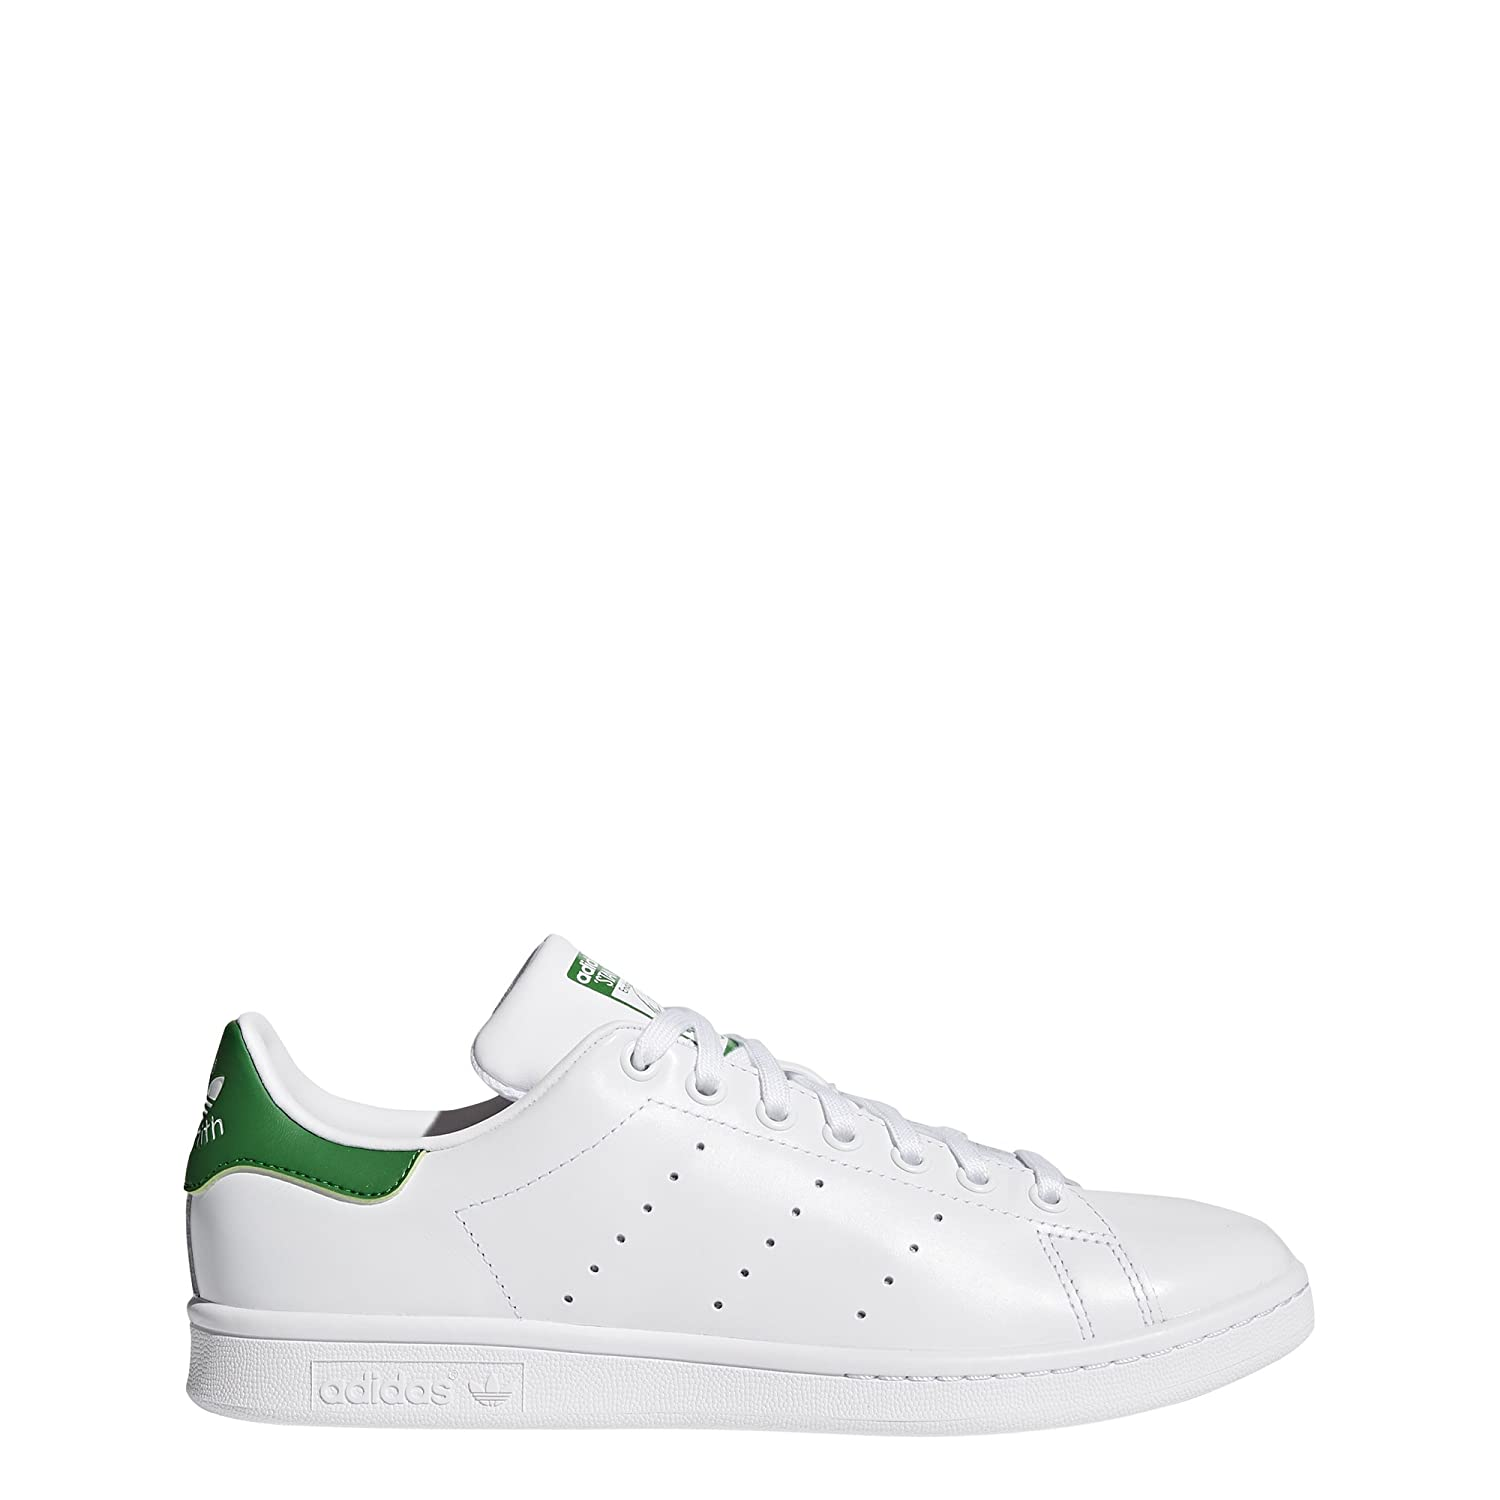 adidas Unisex-Erwachsene Stan Smith M20324 Basketballschuhe  46 EU|Wei? (Running White Ftw/Running White/Fairway)